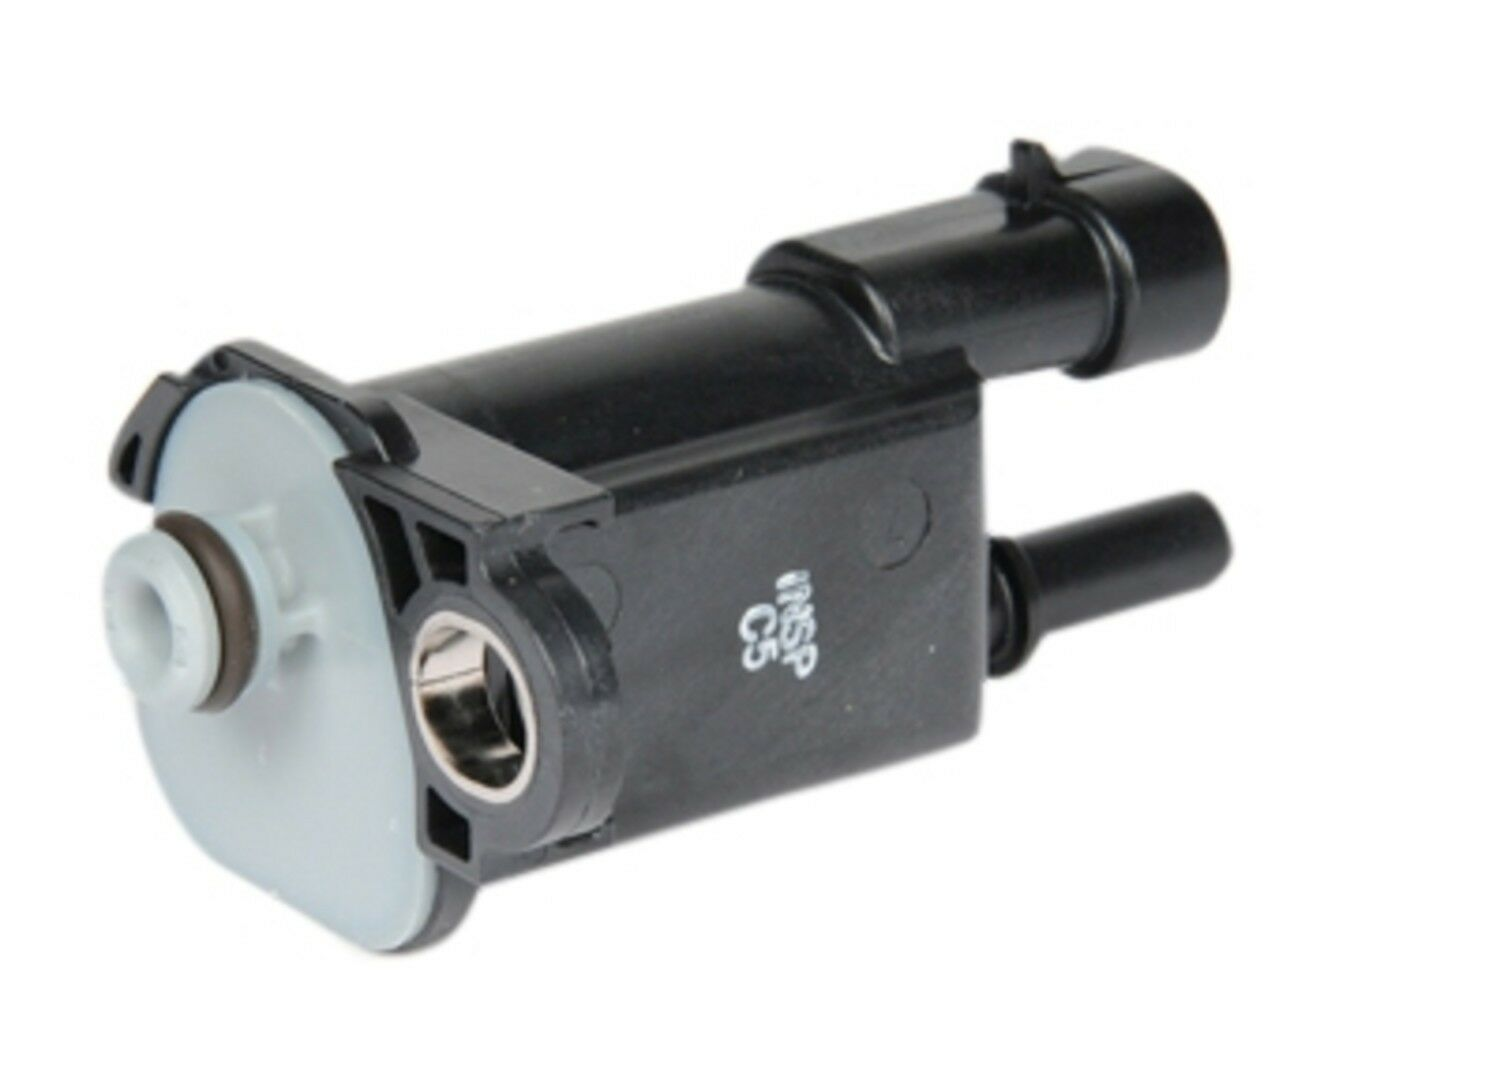 Canister Purge Valve Solenoid >> GM OEM AC Delco PURGE SOLENOID Canister Purge Valve